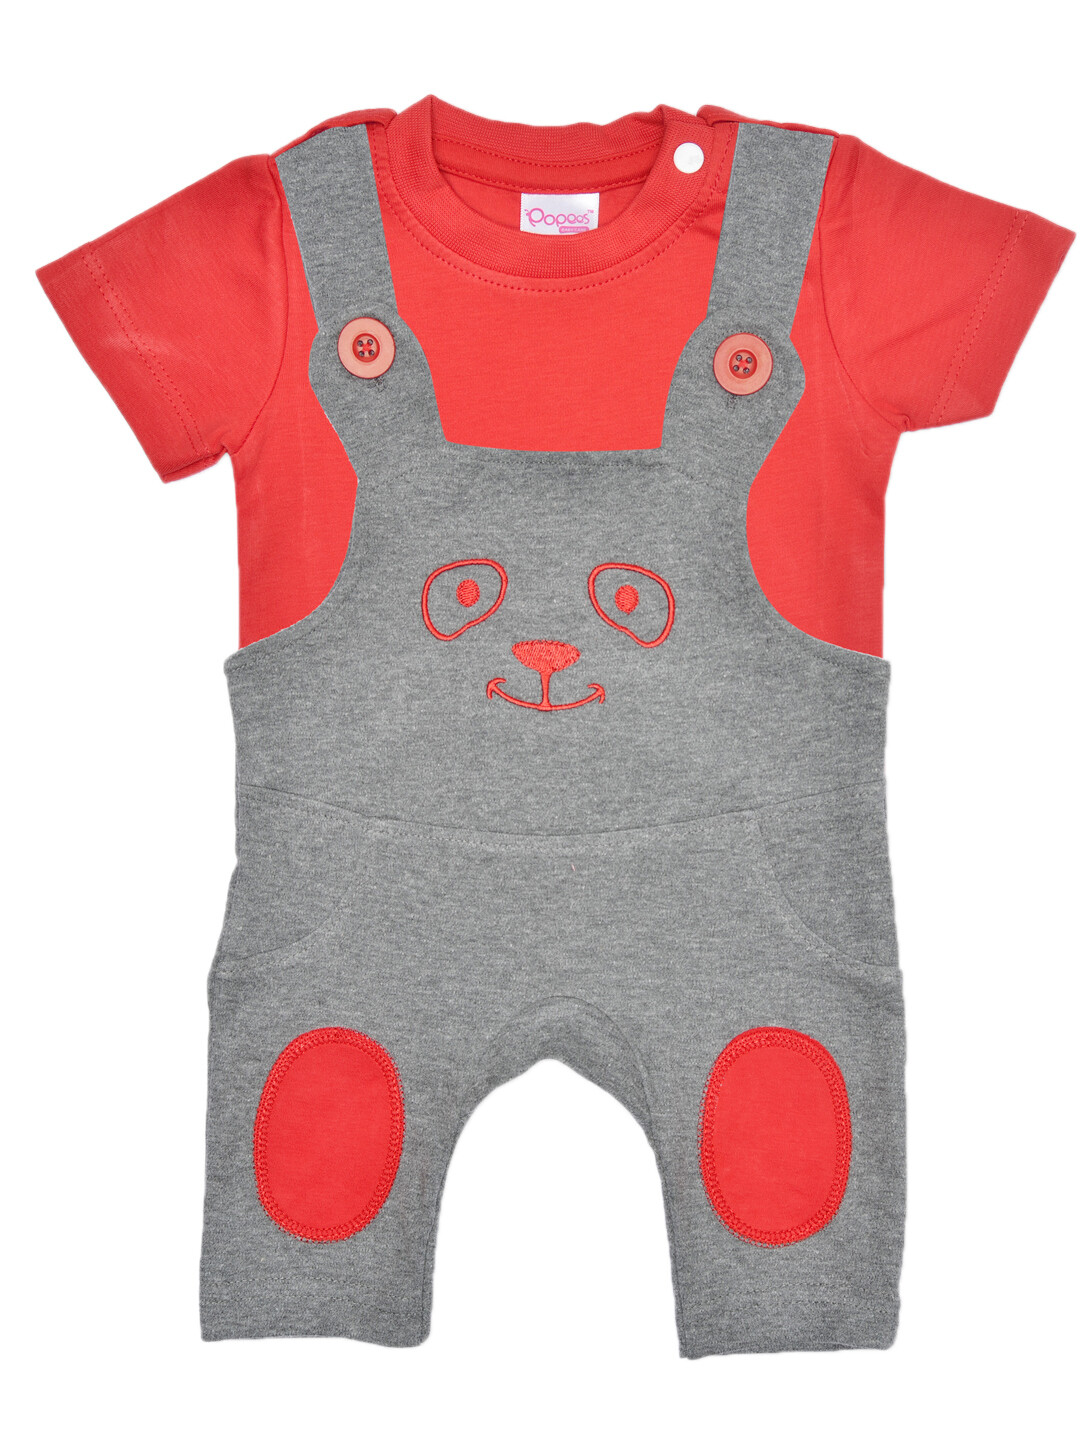 Pepson Red Short Sleeves Round Neck T-shirt with Dungaree